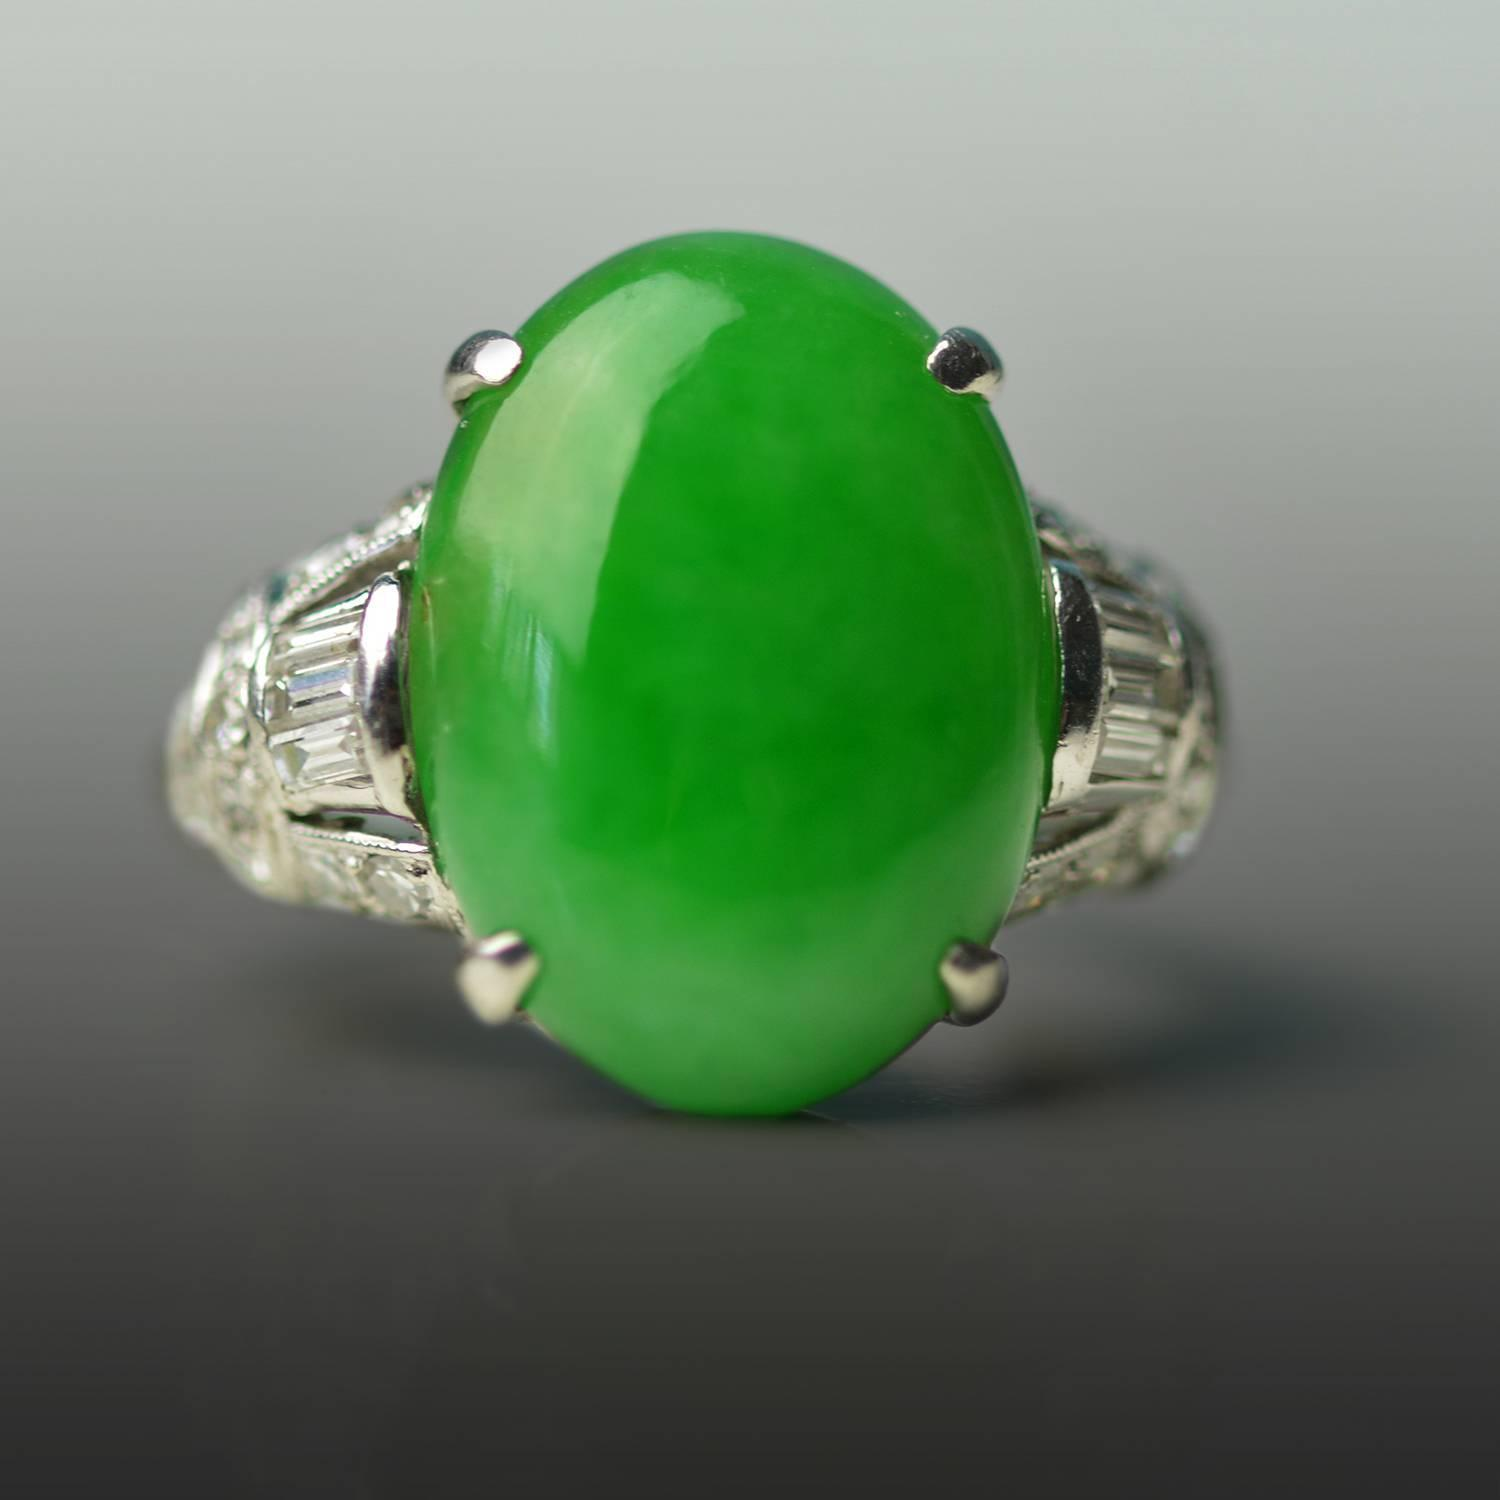 Antique Imperial Jade Platinum Ring For Sale At 1stdibs